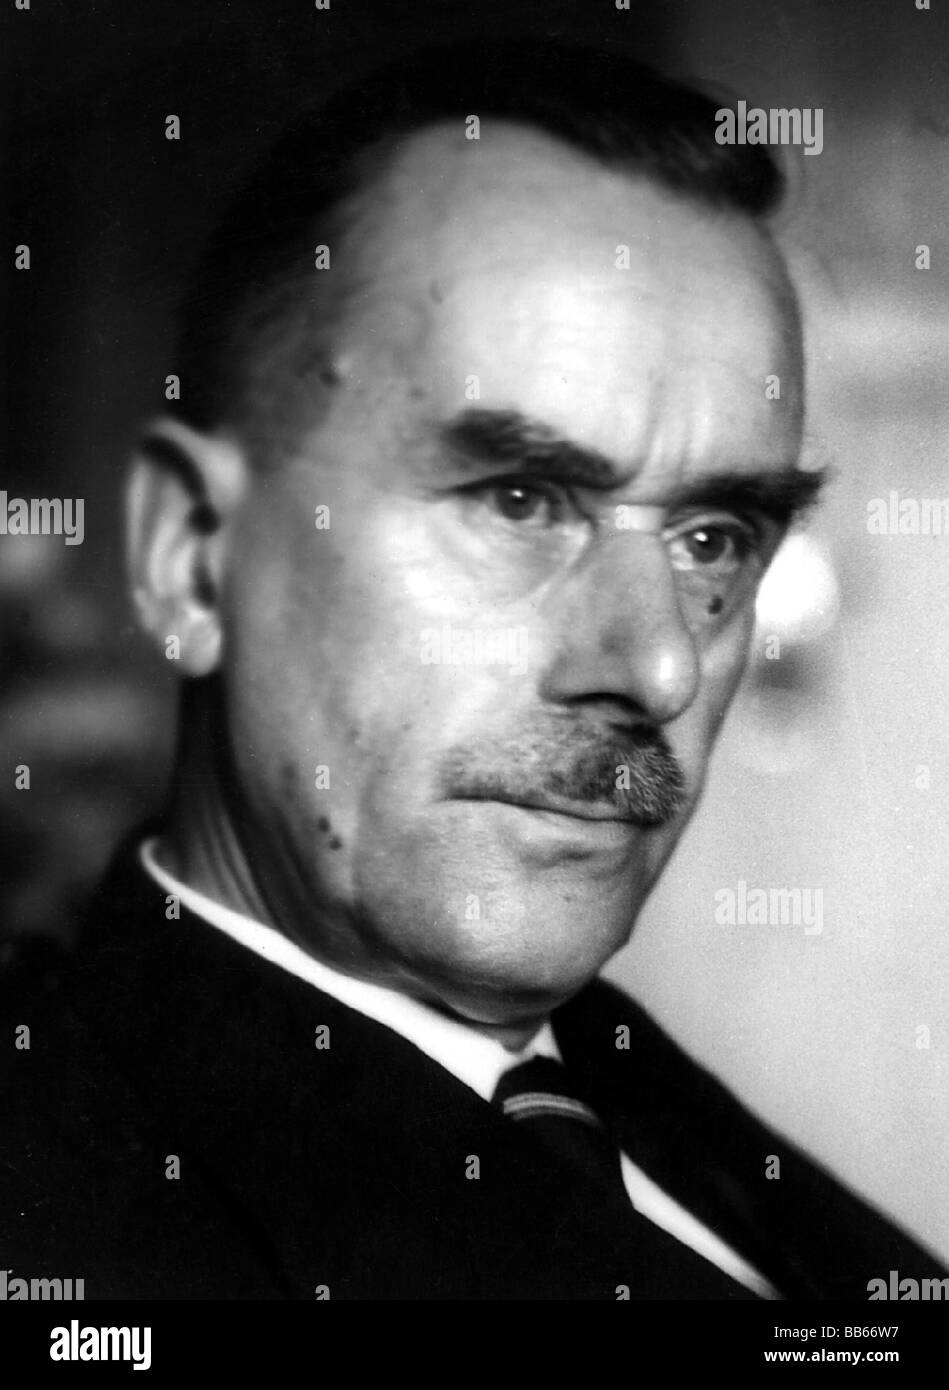 Mann, Thomas, 6.6.1875 - 12.8.1955, German author / writer, Nobel prize laureate for Literature 1929, portrait, Stock Photo